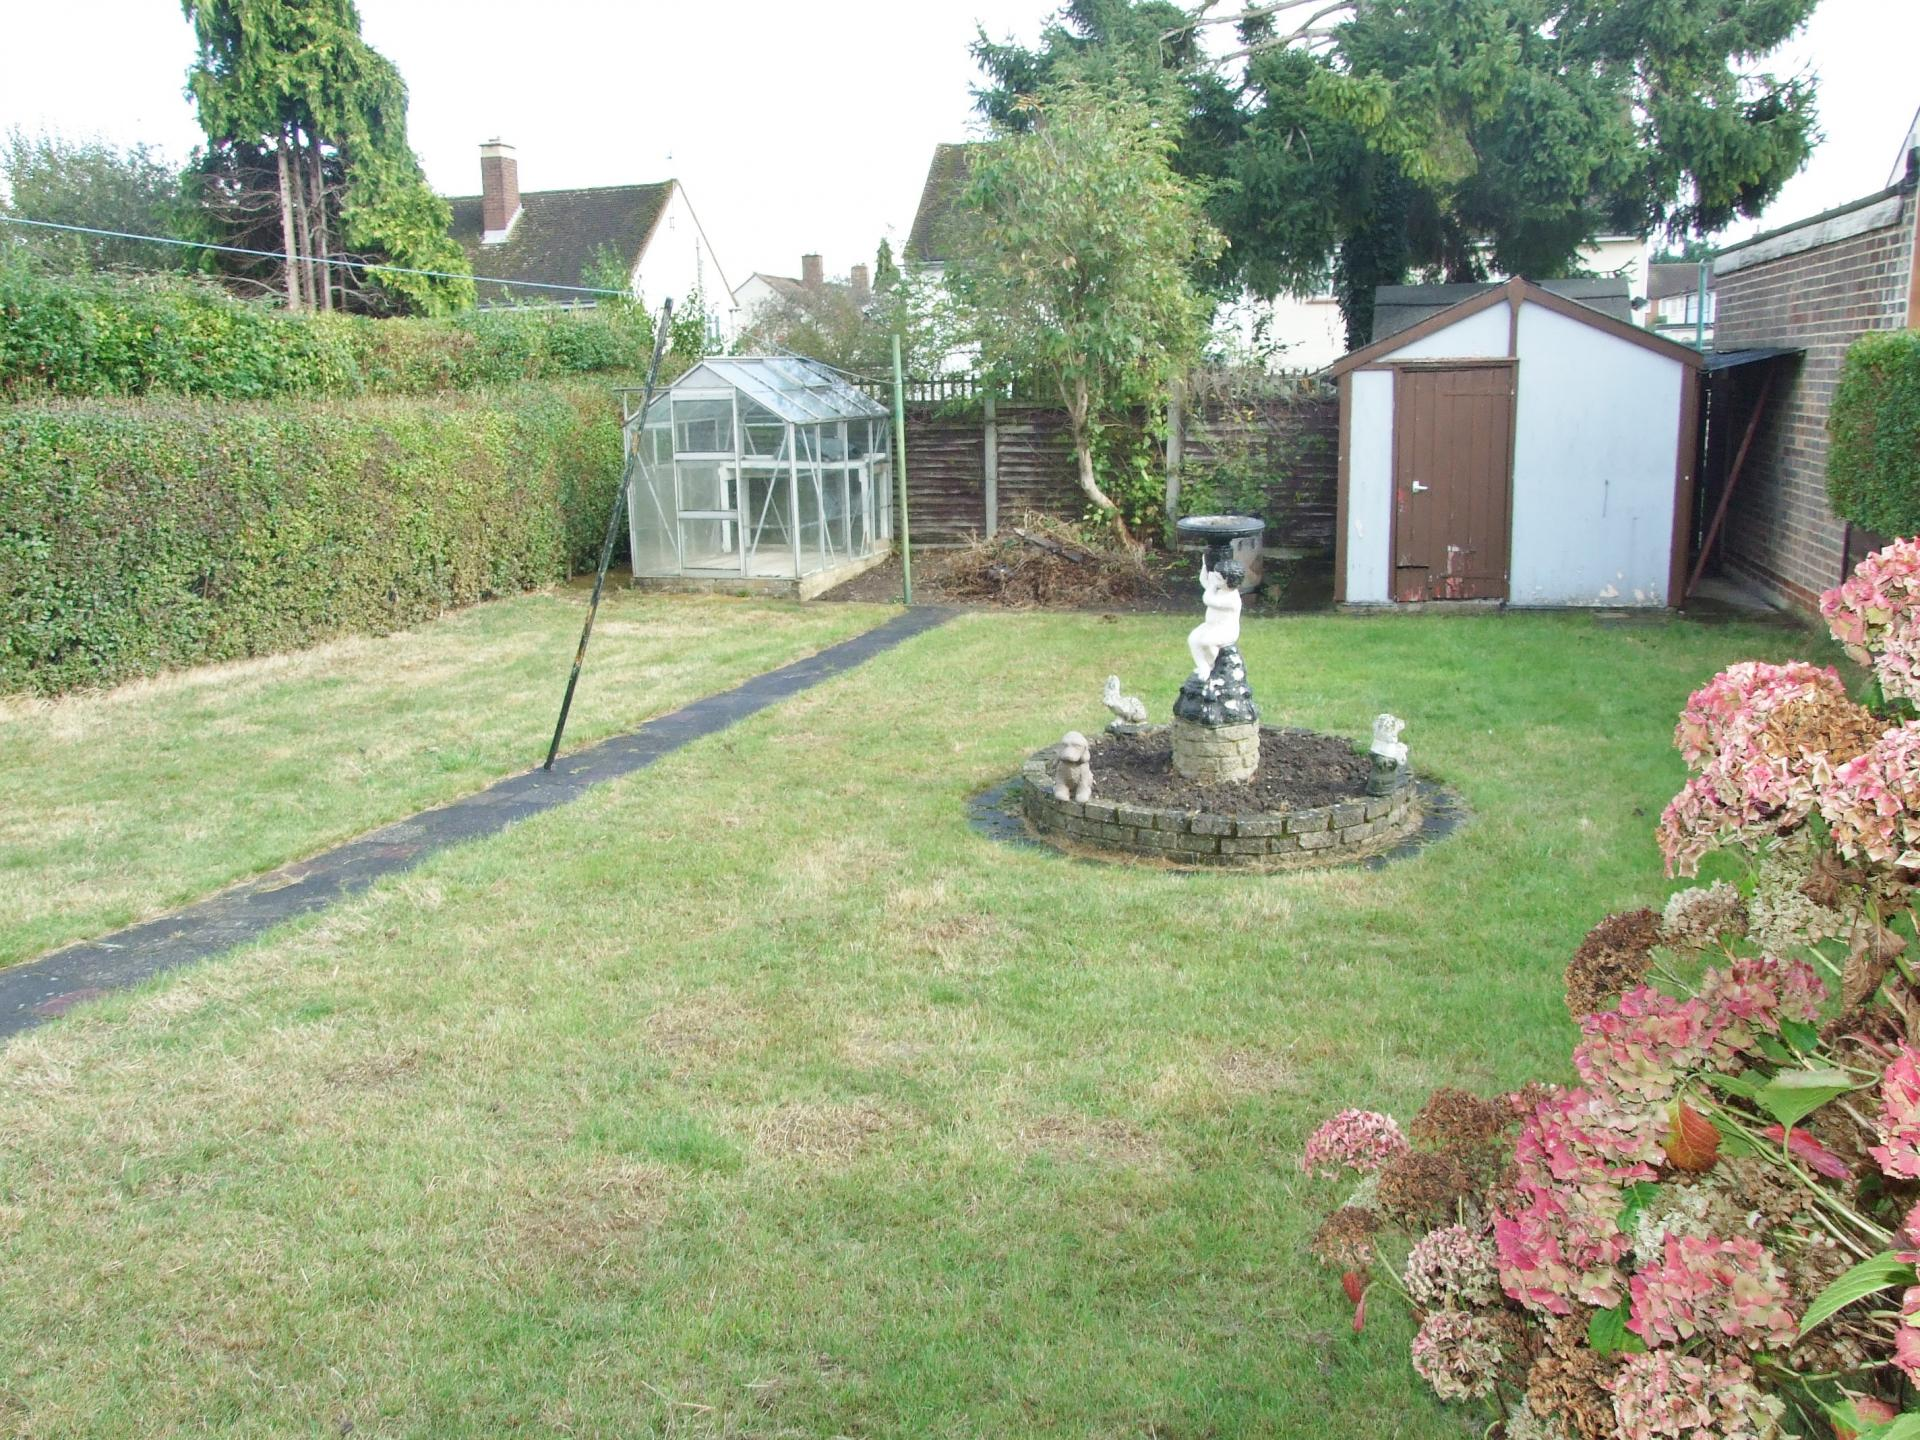 3 Bedroom House For Sale In Harlow